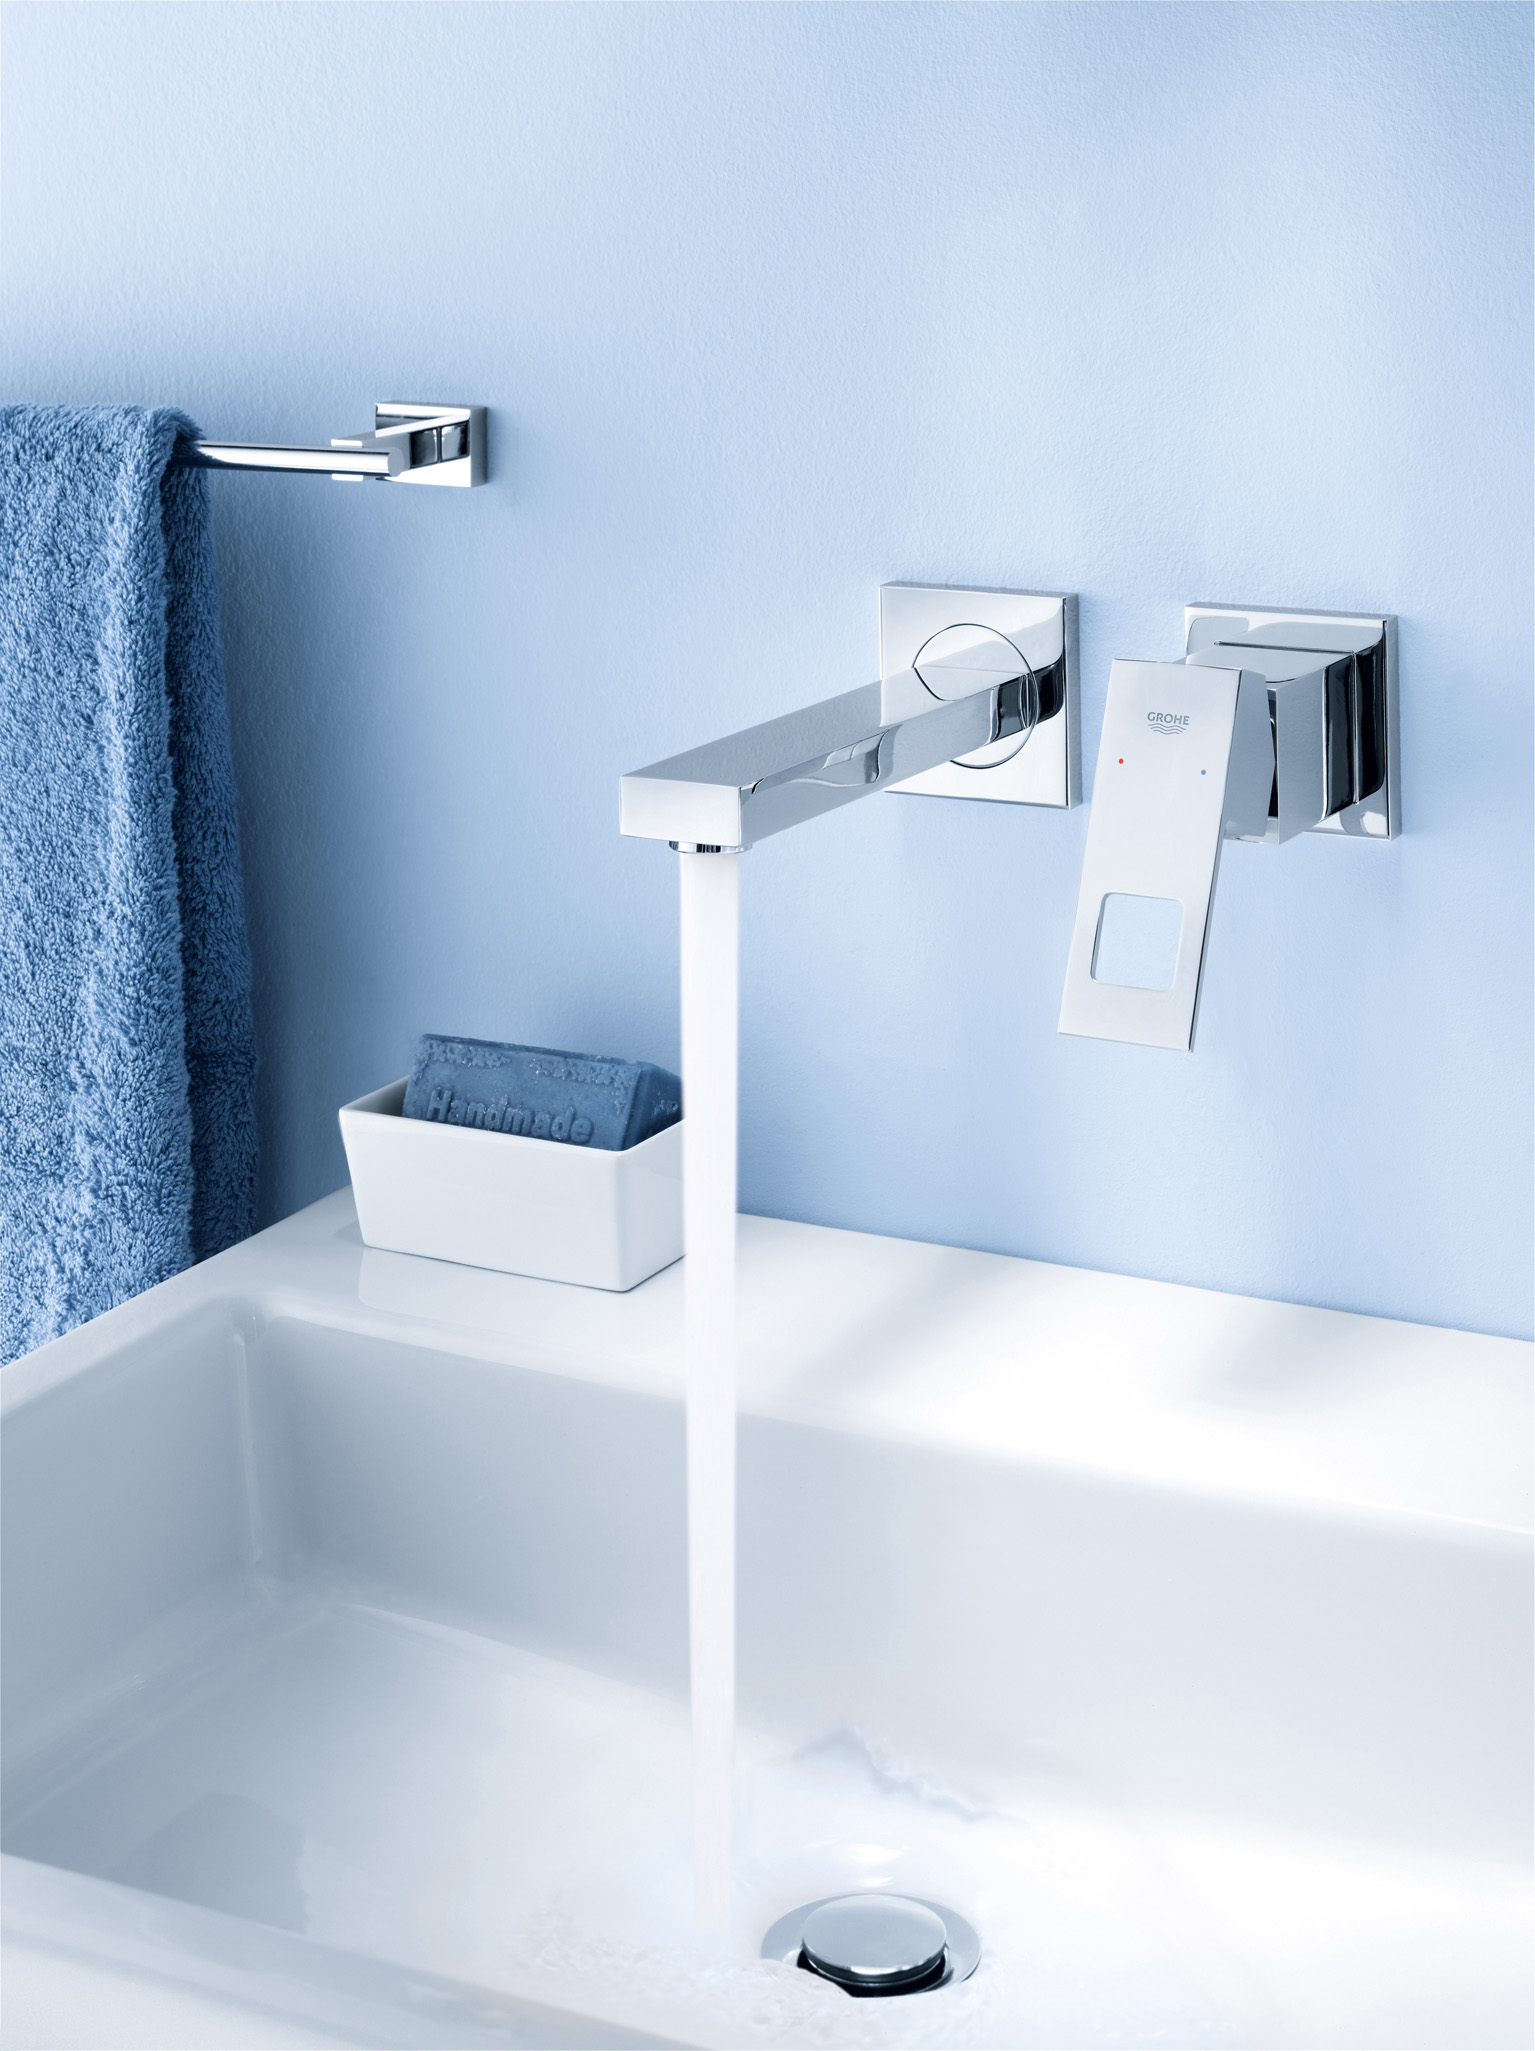 Photo Gallery. Find your dream team of washbasin and faucet